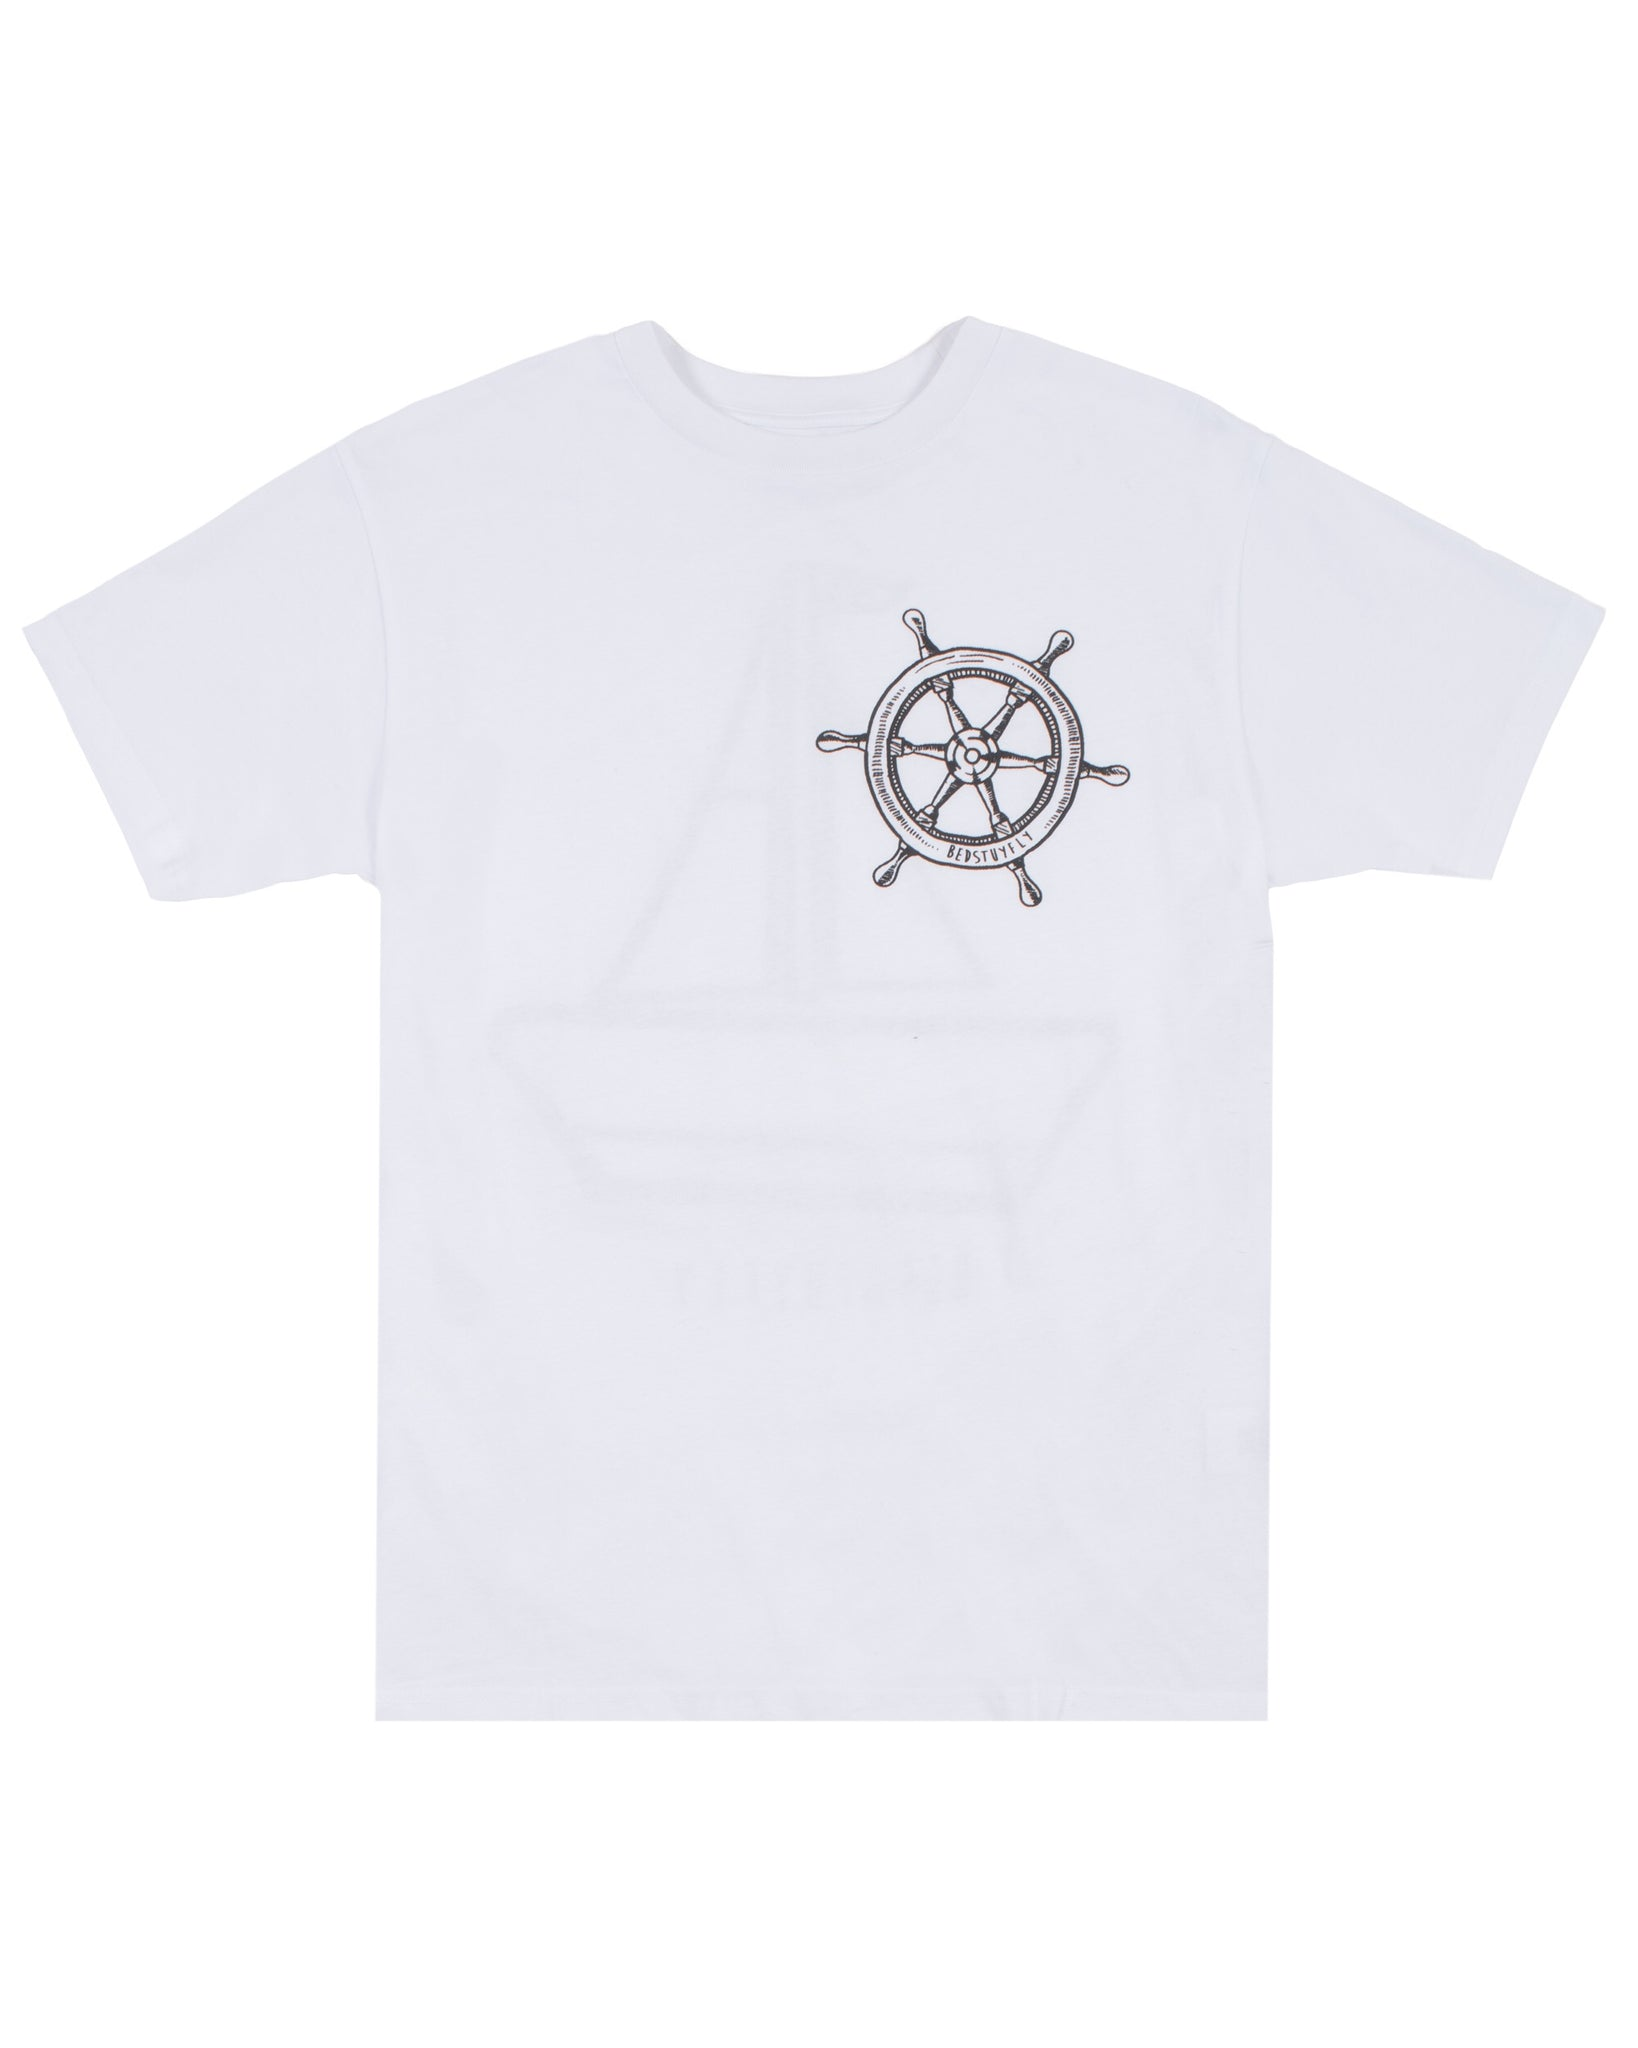 Yacht Club T-Shirt (White)